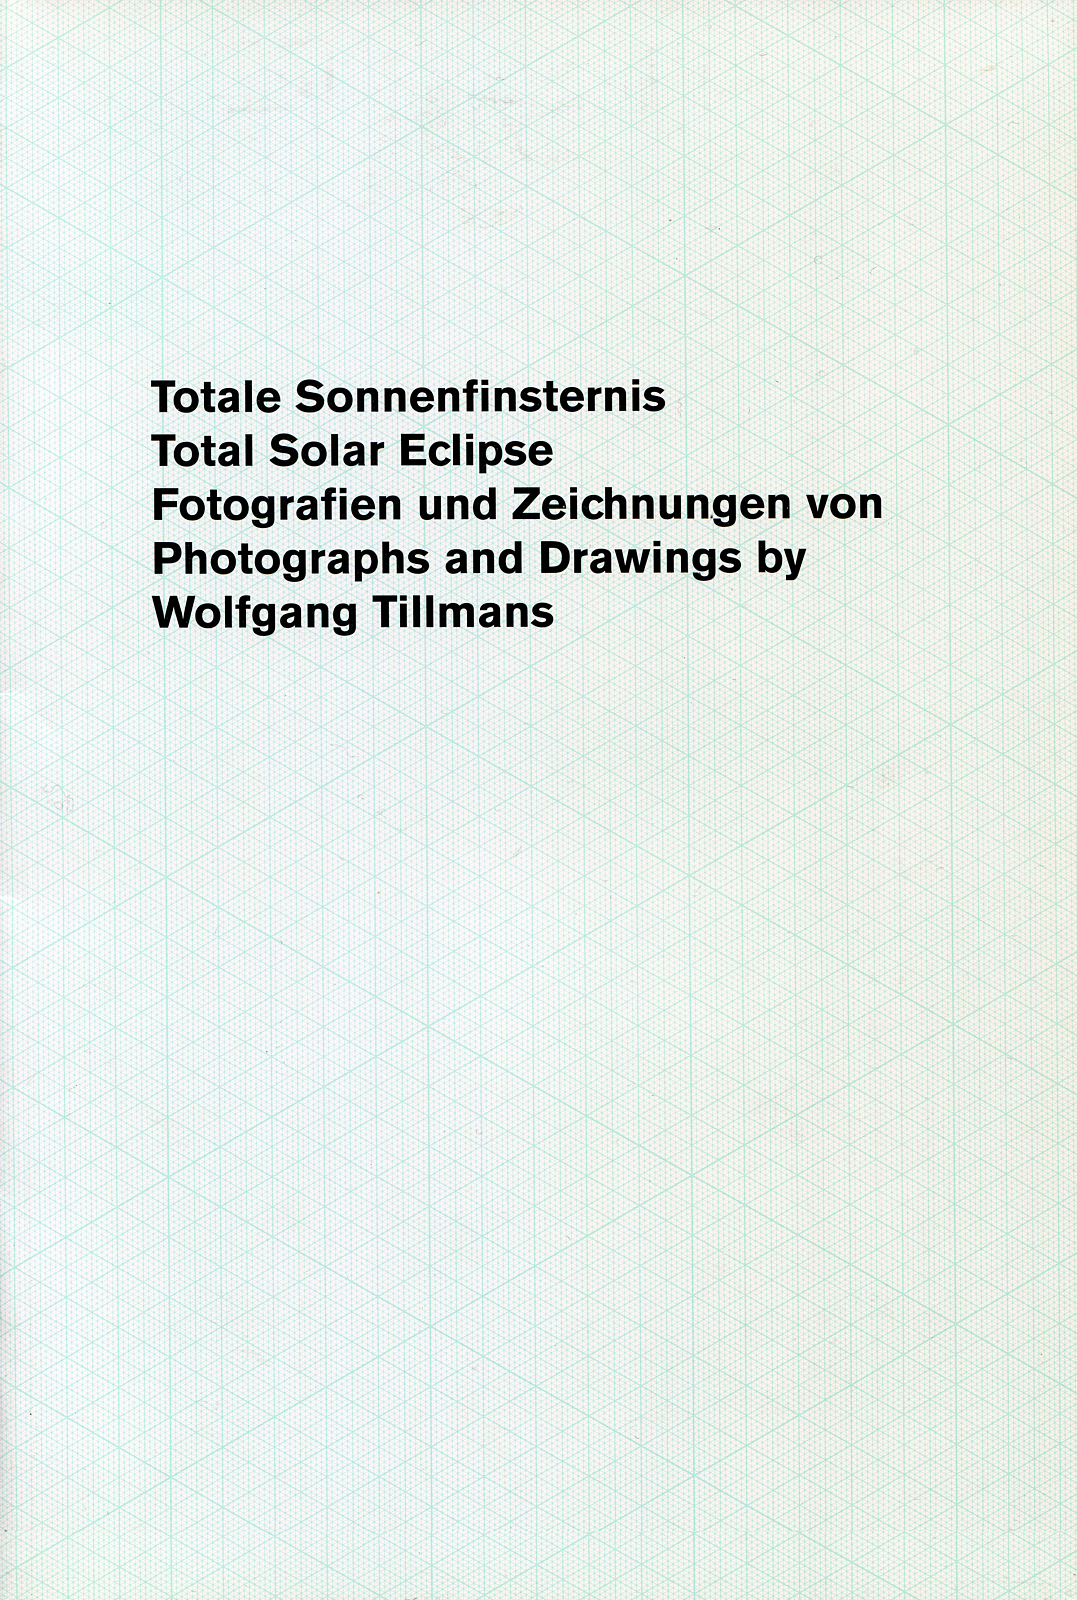 "Wolfgang Tillmans – ""Total Solar Eclipse / Totale Sonnenfinsternis"" 1999, 48 p., fully illustrated, Owrps., 30.2 x 20.5 cm out of print – Artist book published on the occasion of his exhibition at our gallery in May 1999. The book includes photographs, image material, graphics and texts that Wolfgang Tillmans made or assembled on the phenomenon of solar eclipses."